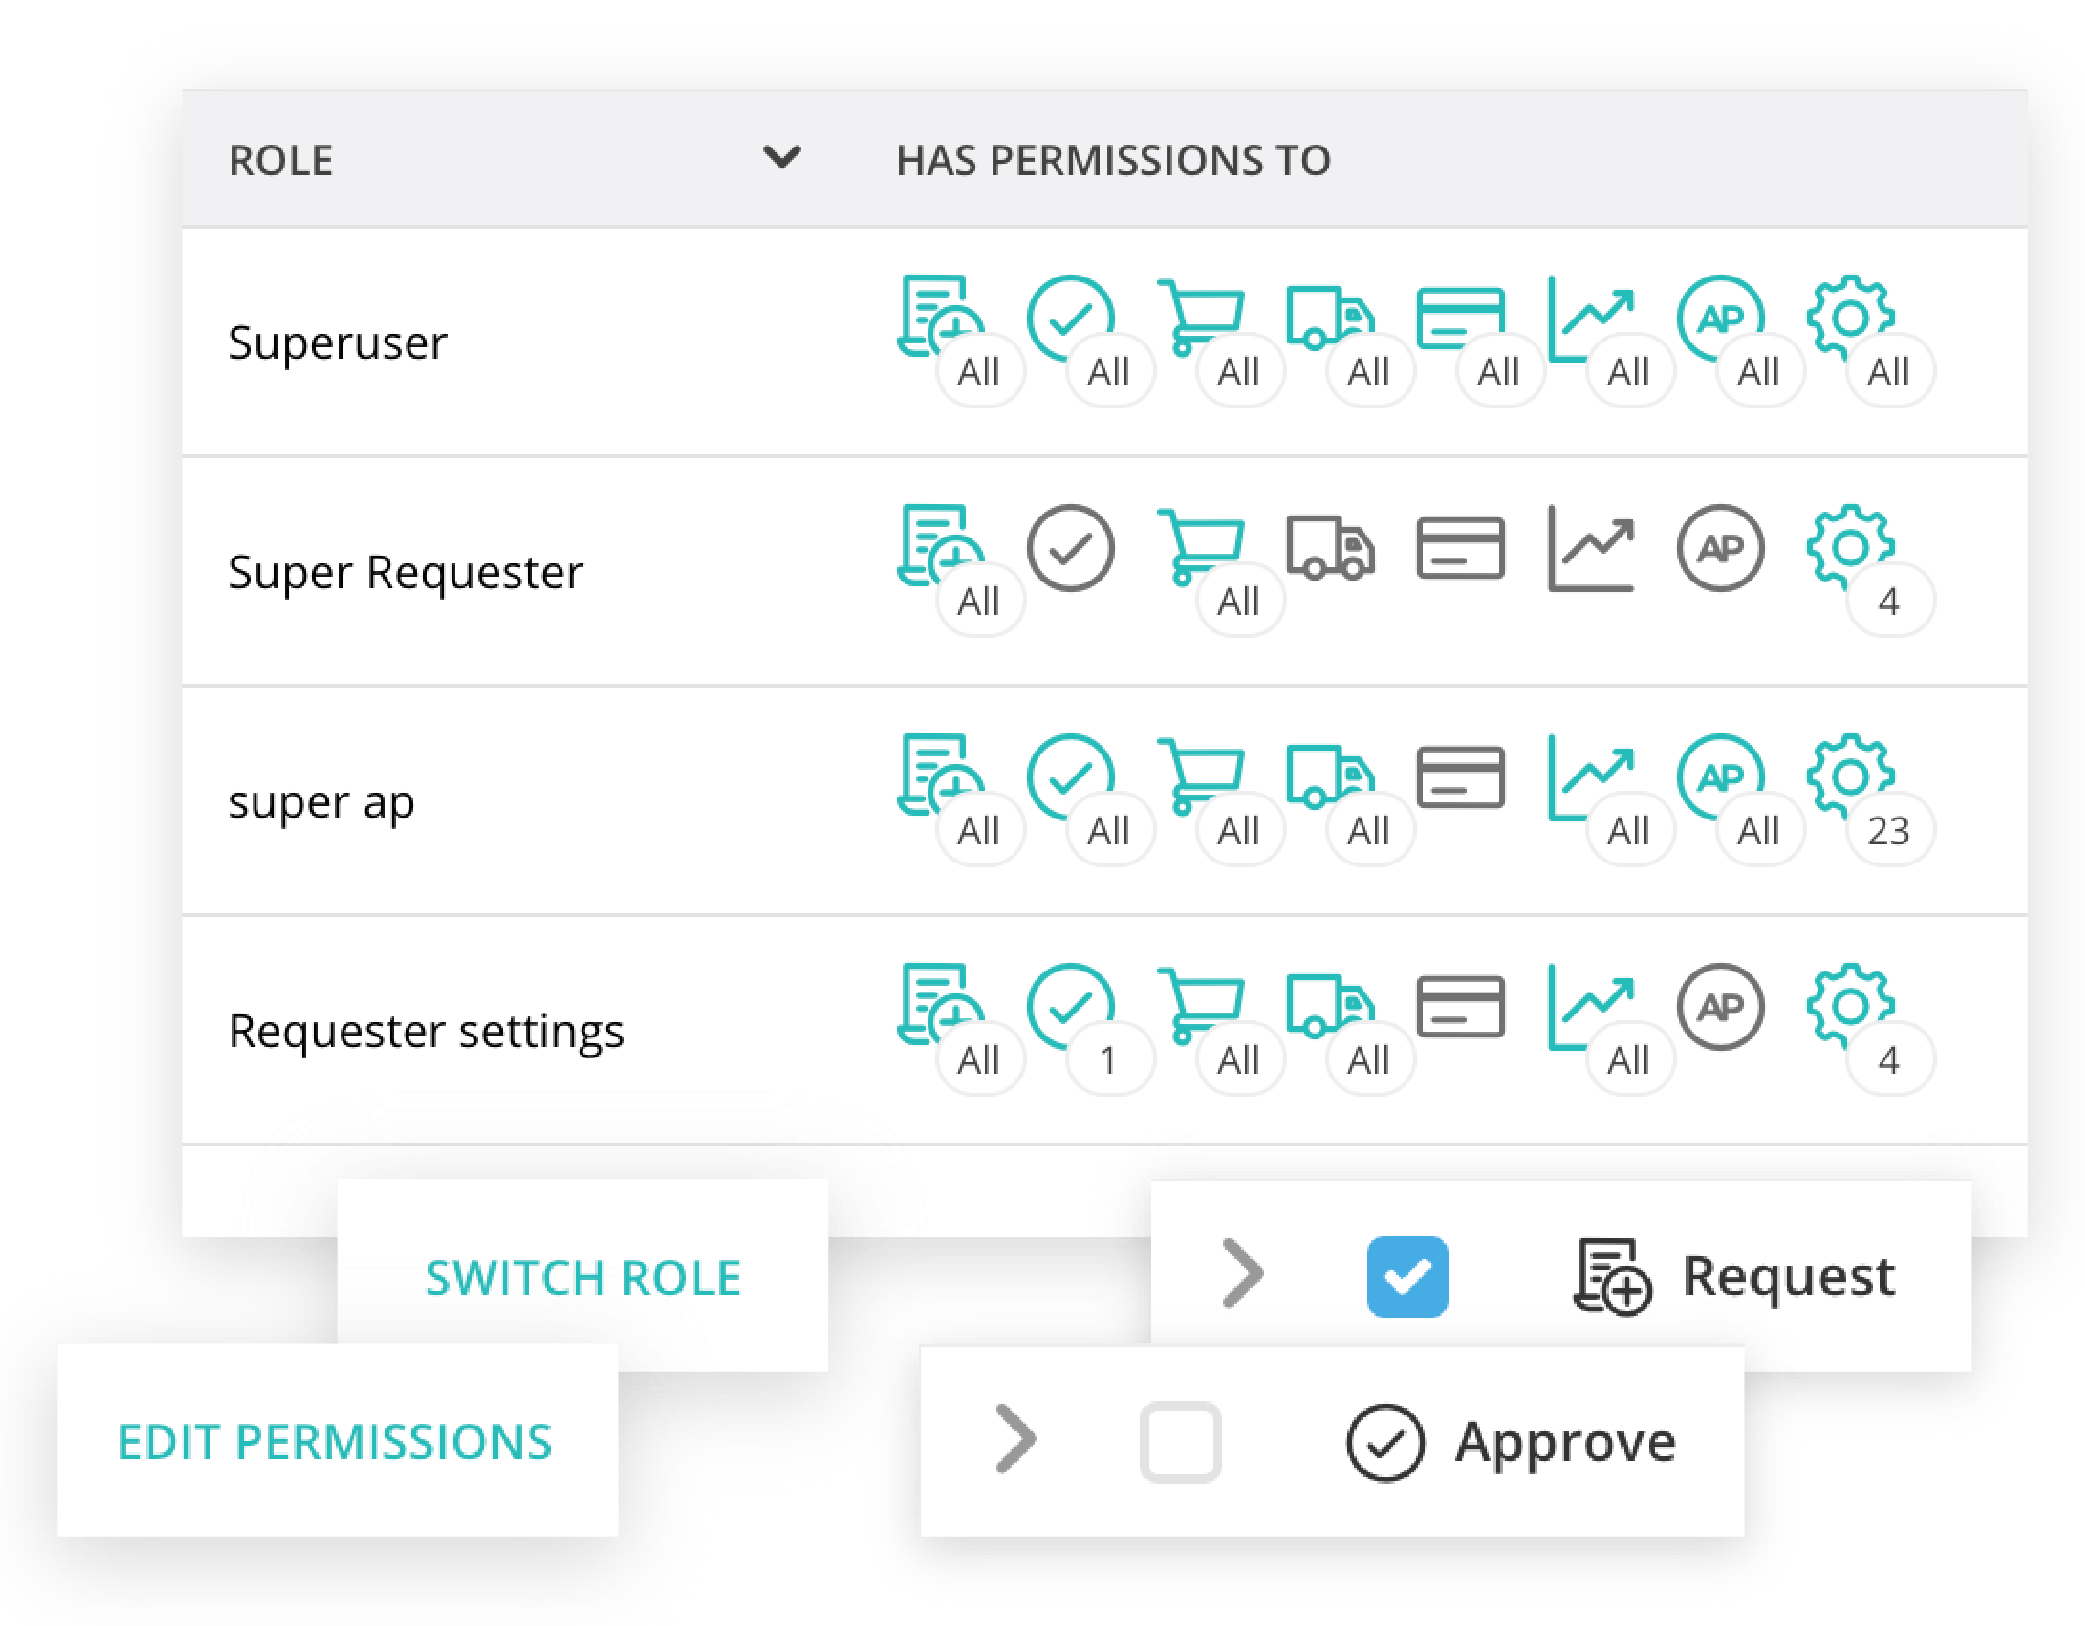 Graphic of role permissions inside the Procurify Platform, used to highlight flexible user permissions.